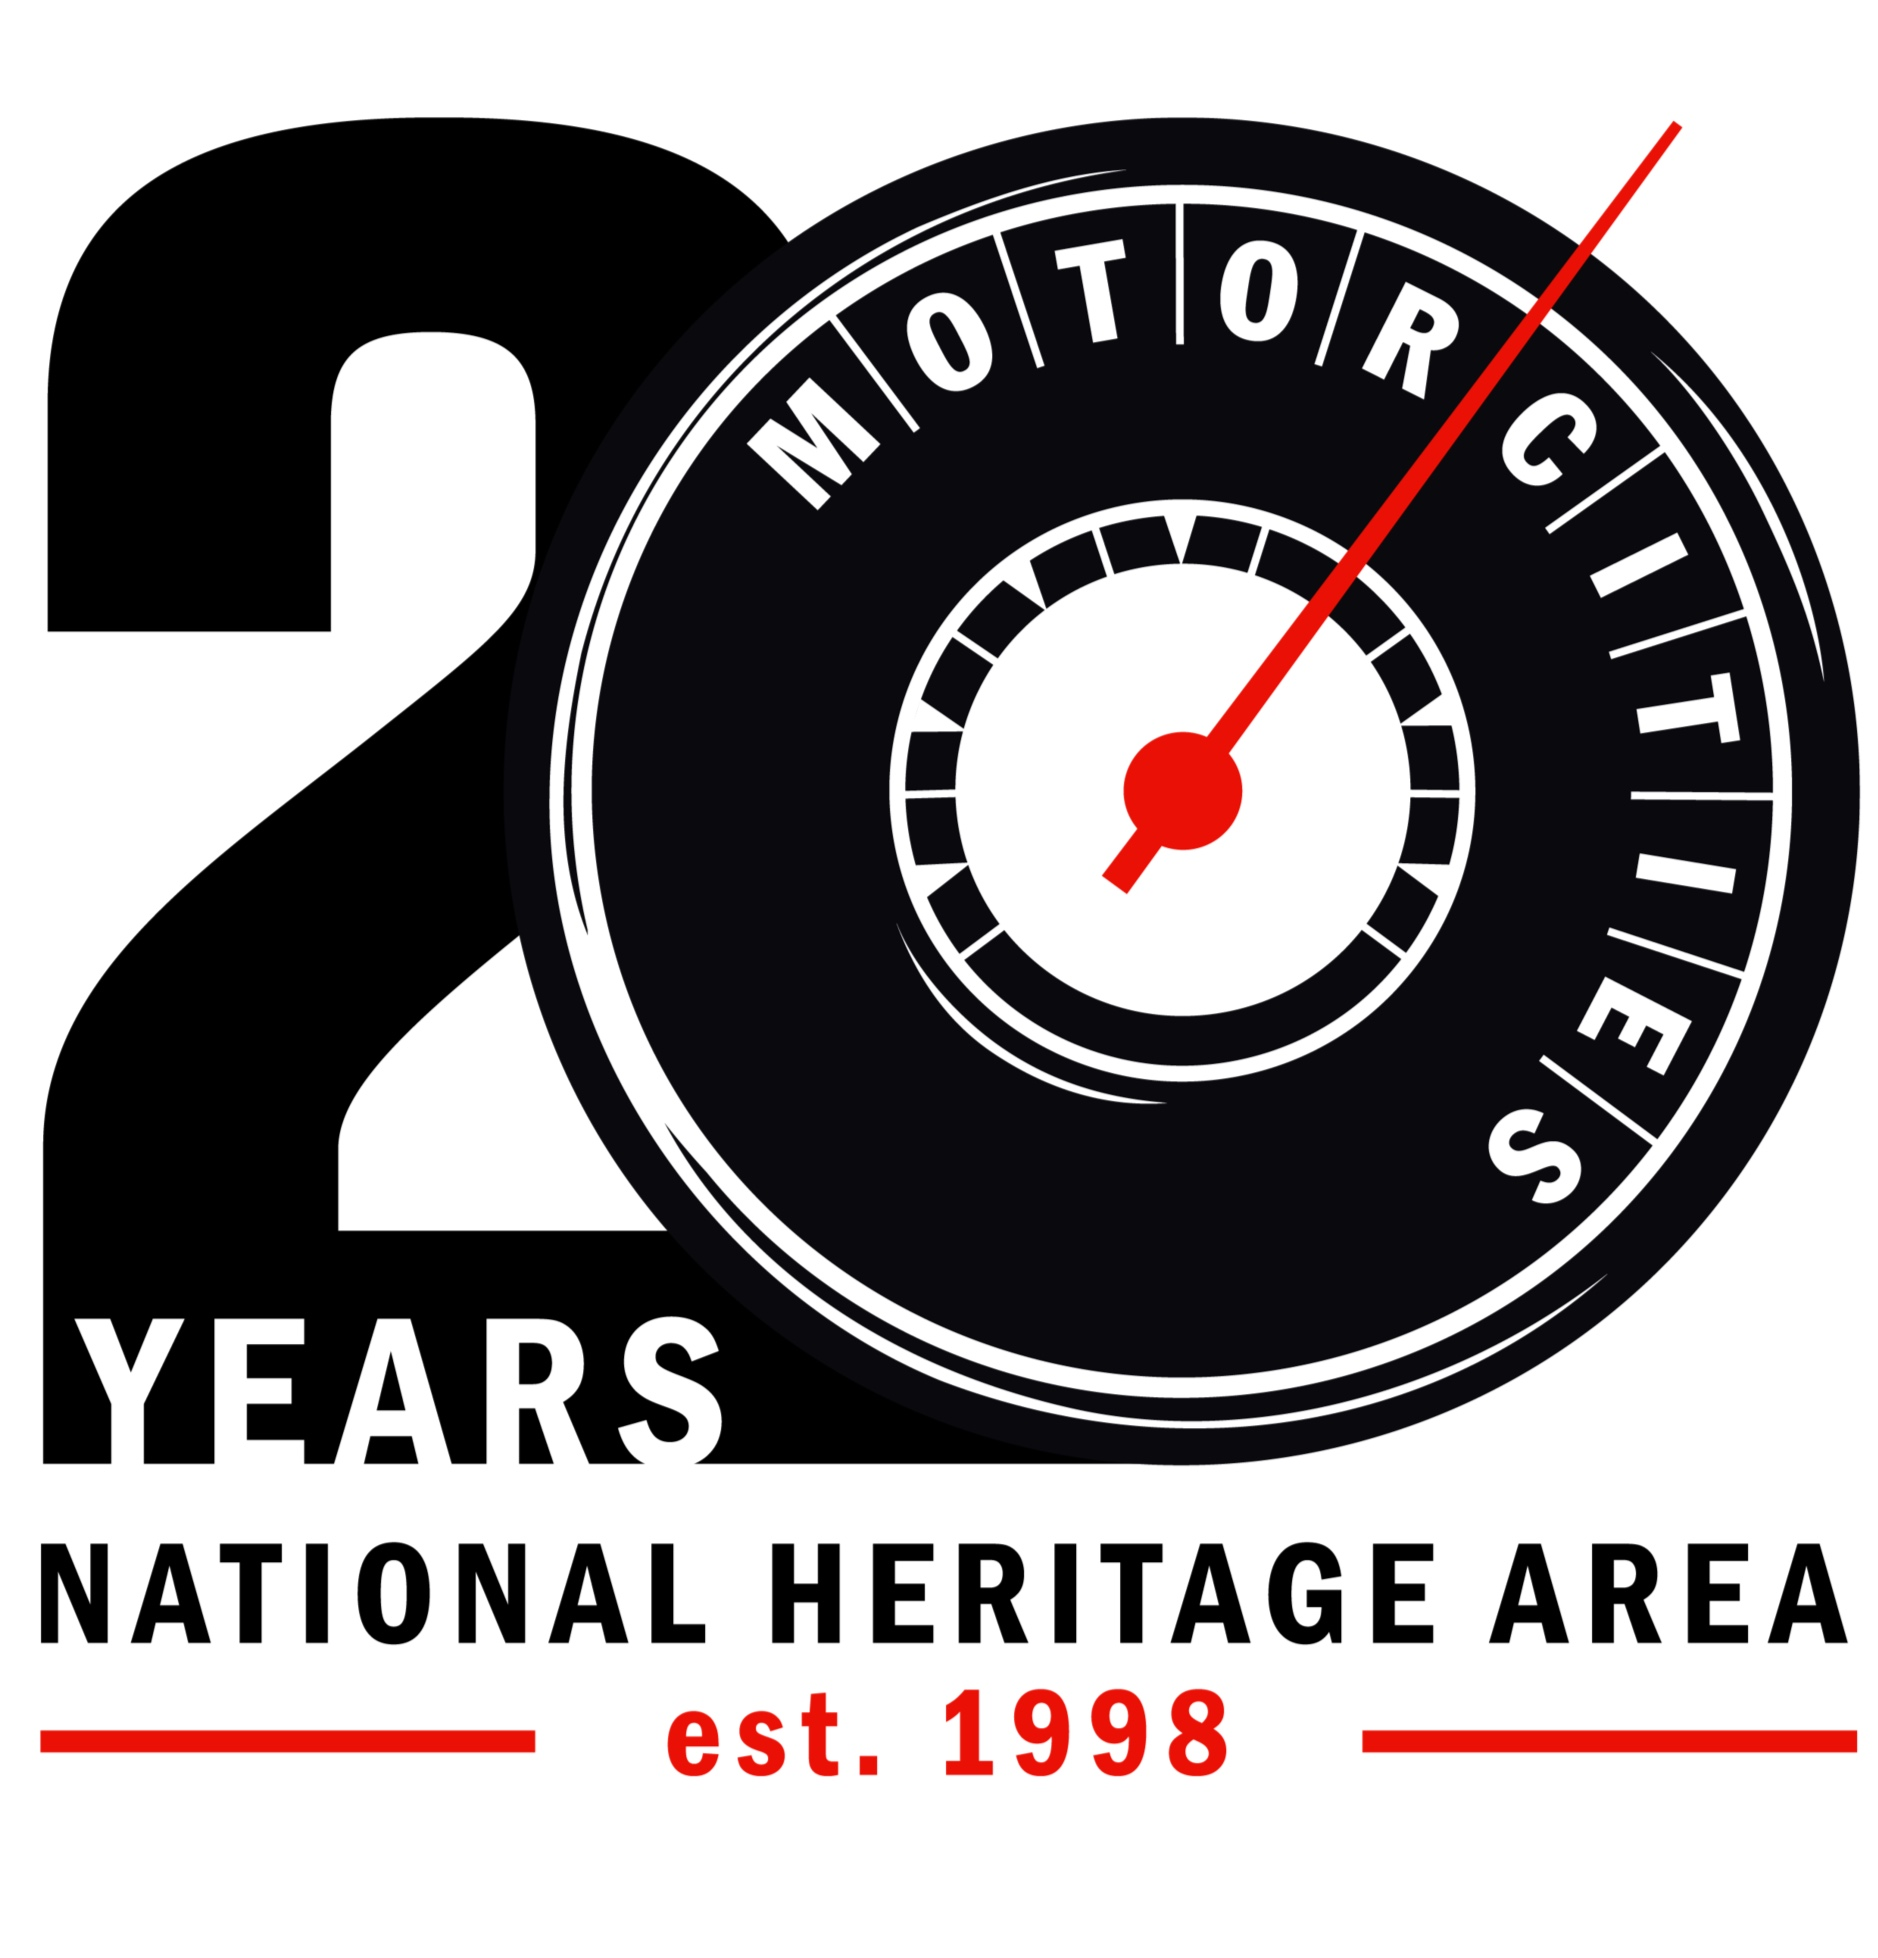 - Motorcities National Heritage Area: 20 Years Commemorative Logo Design